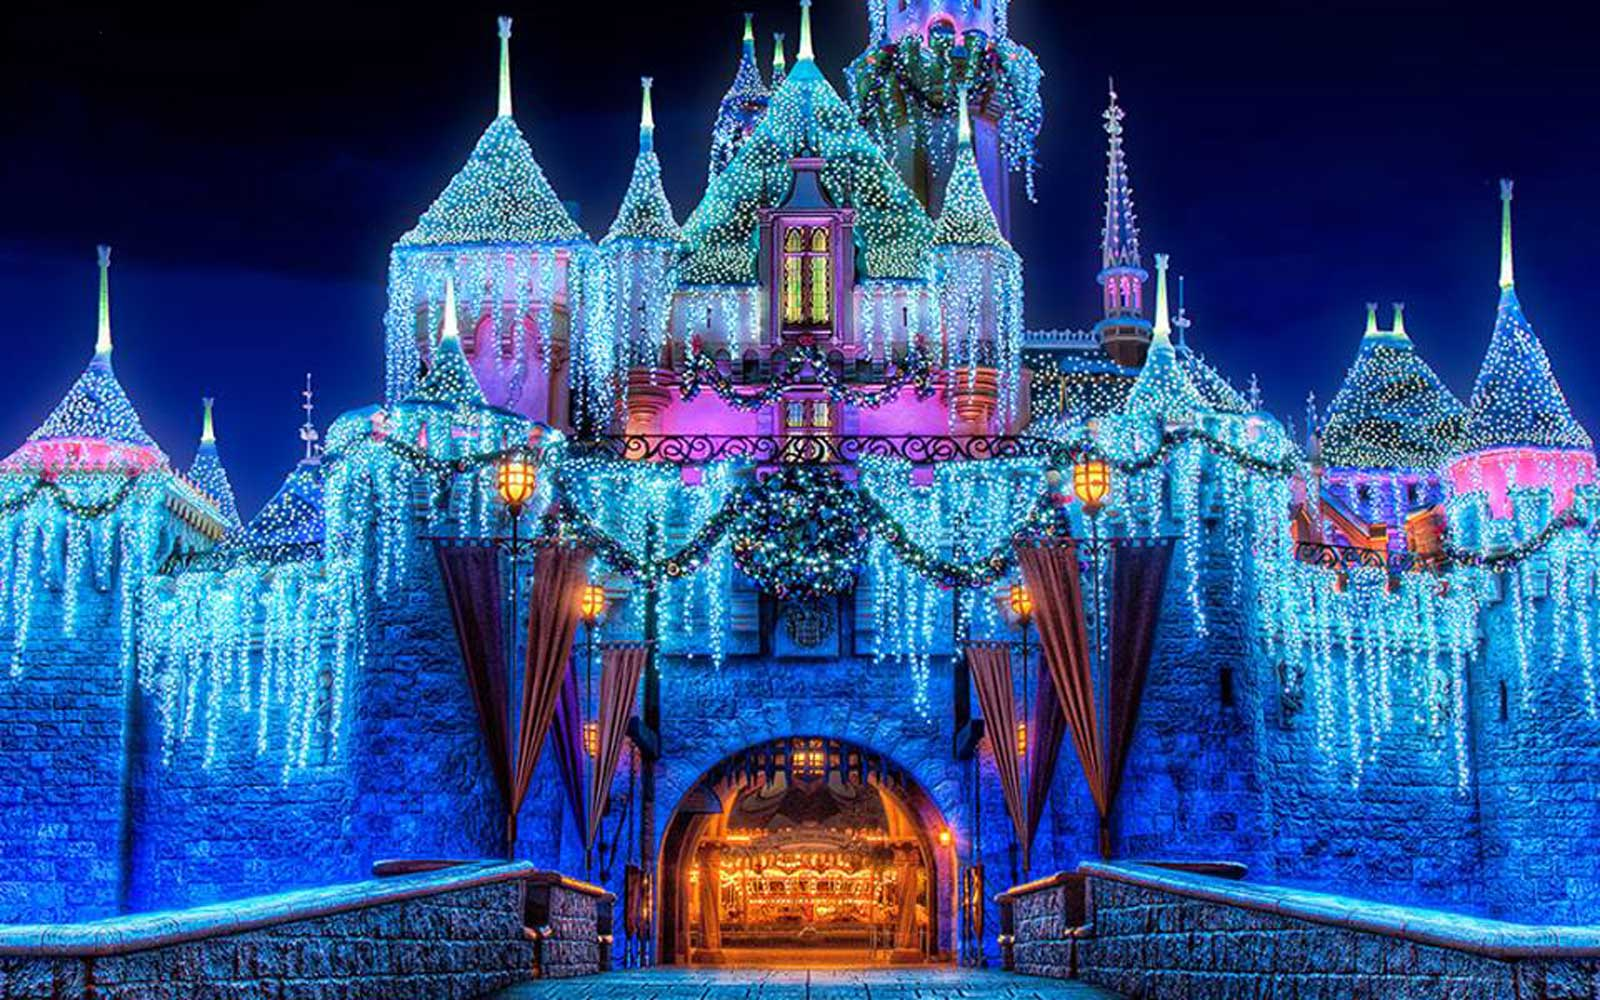 Watch Disneyland Transform for the Holidays by Night in This Incredible Video